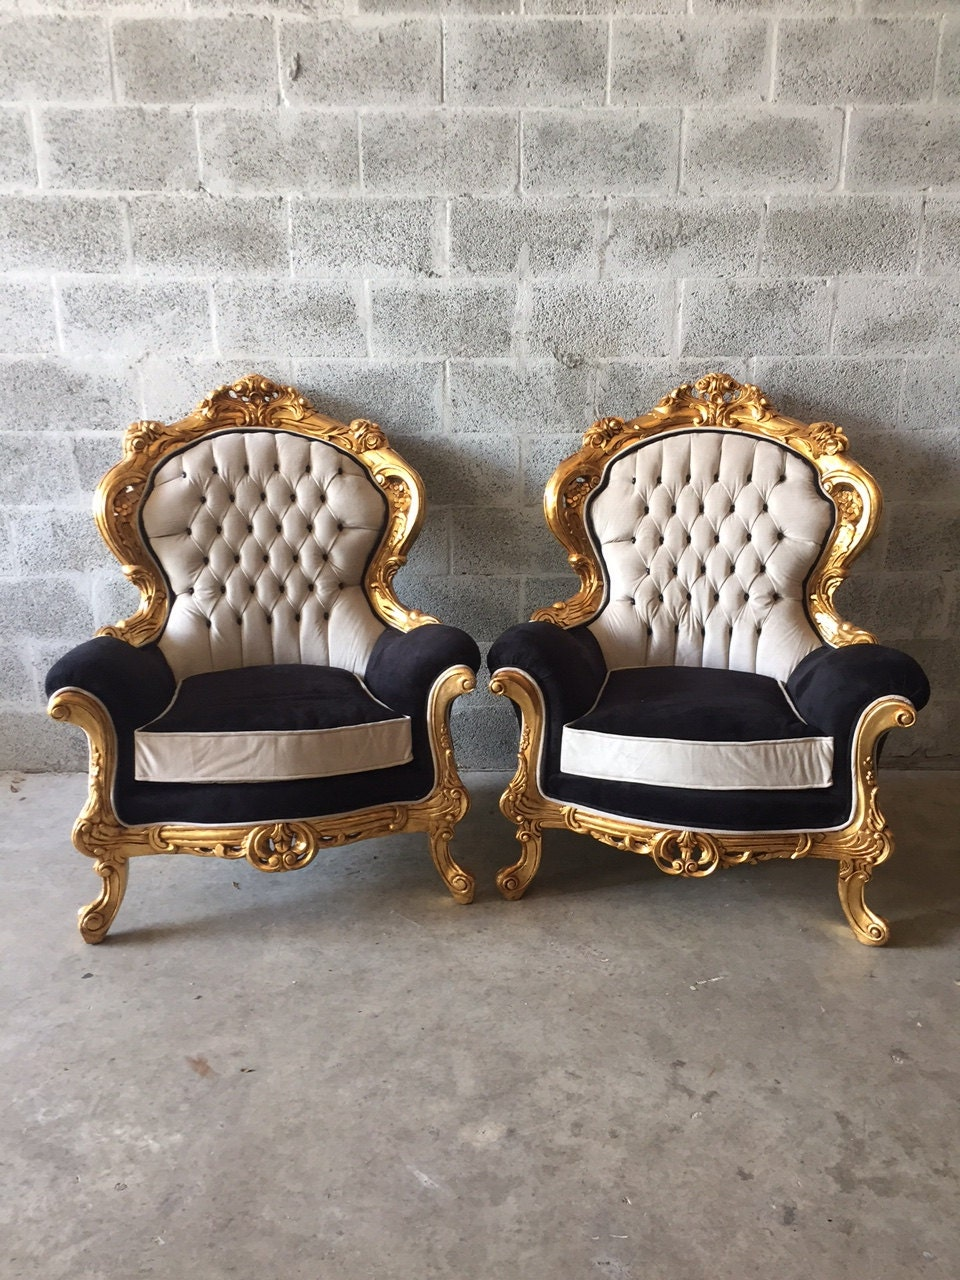 Baroque Tufted Chair Antique Chair Furniture Italian Refinished Gold Leaf  Reupholster Black Velvet Champagne Tufted French Louis XVI Rococo